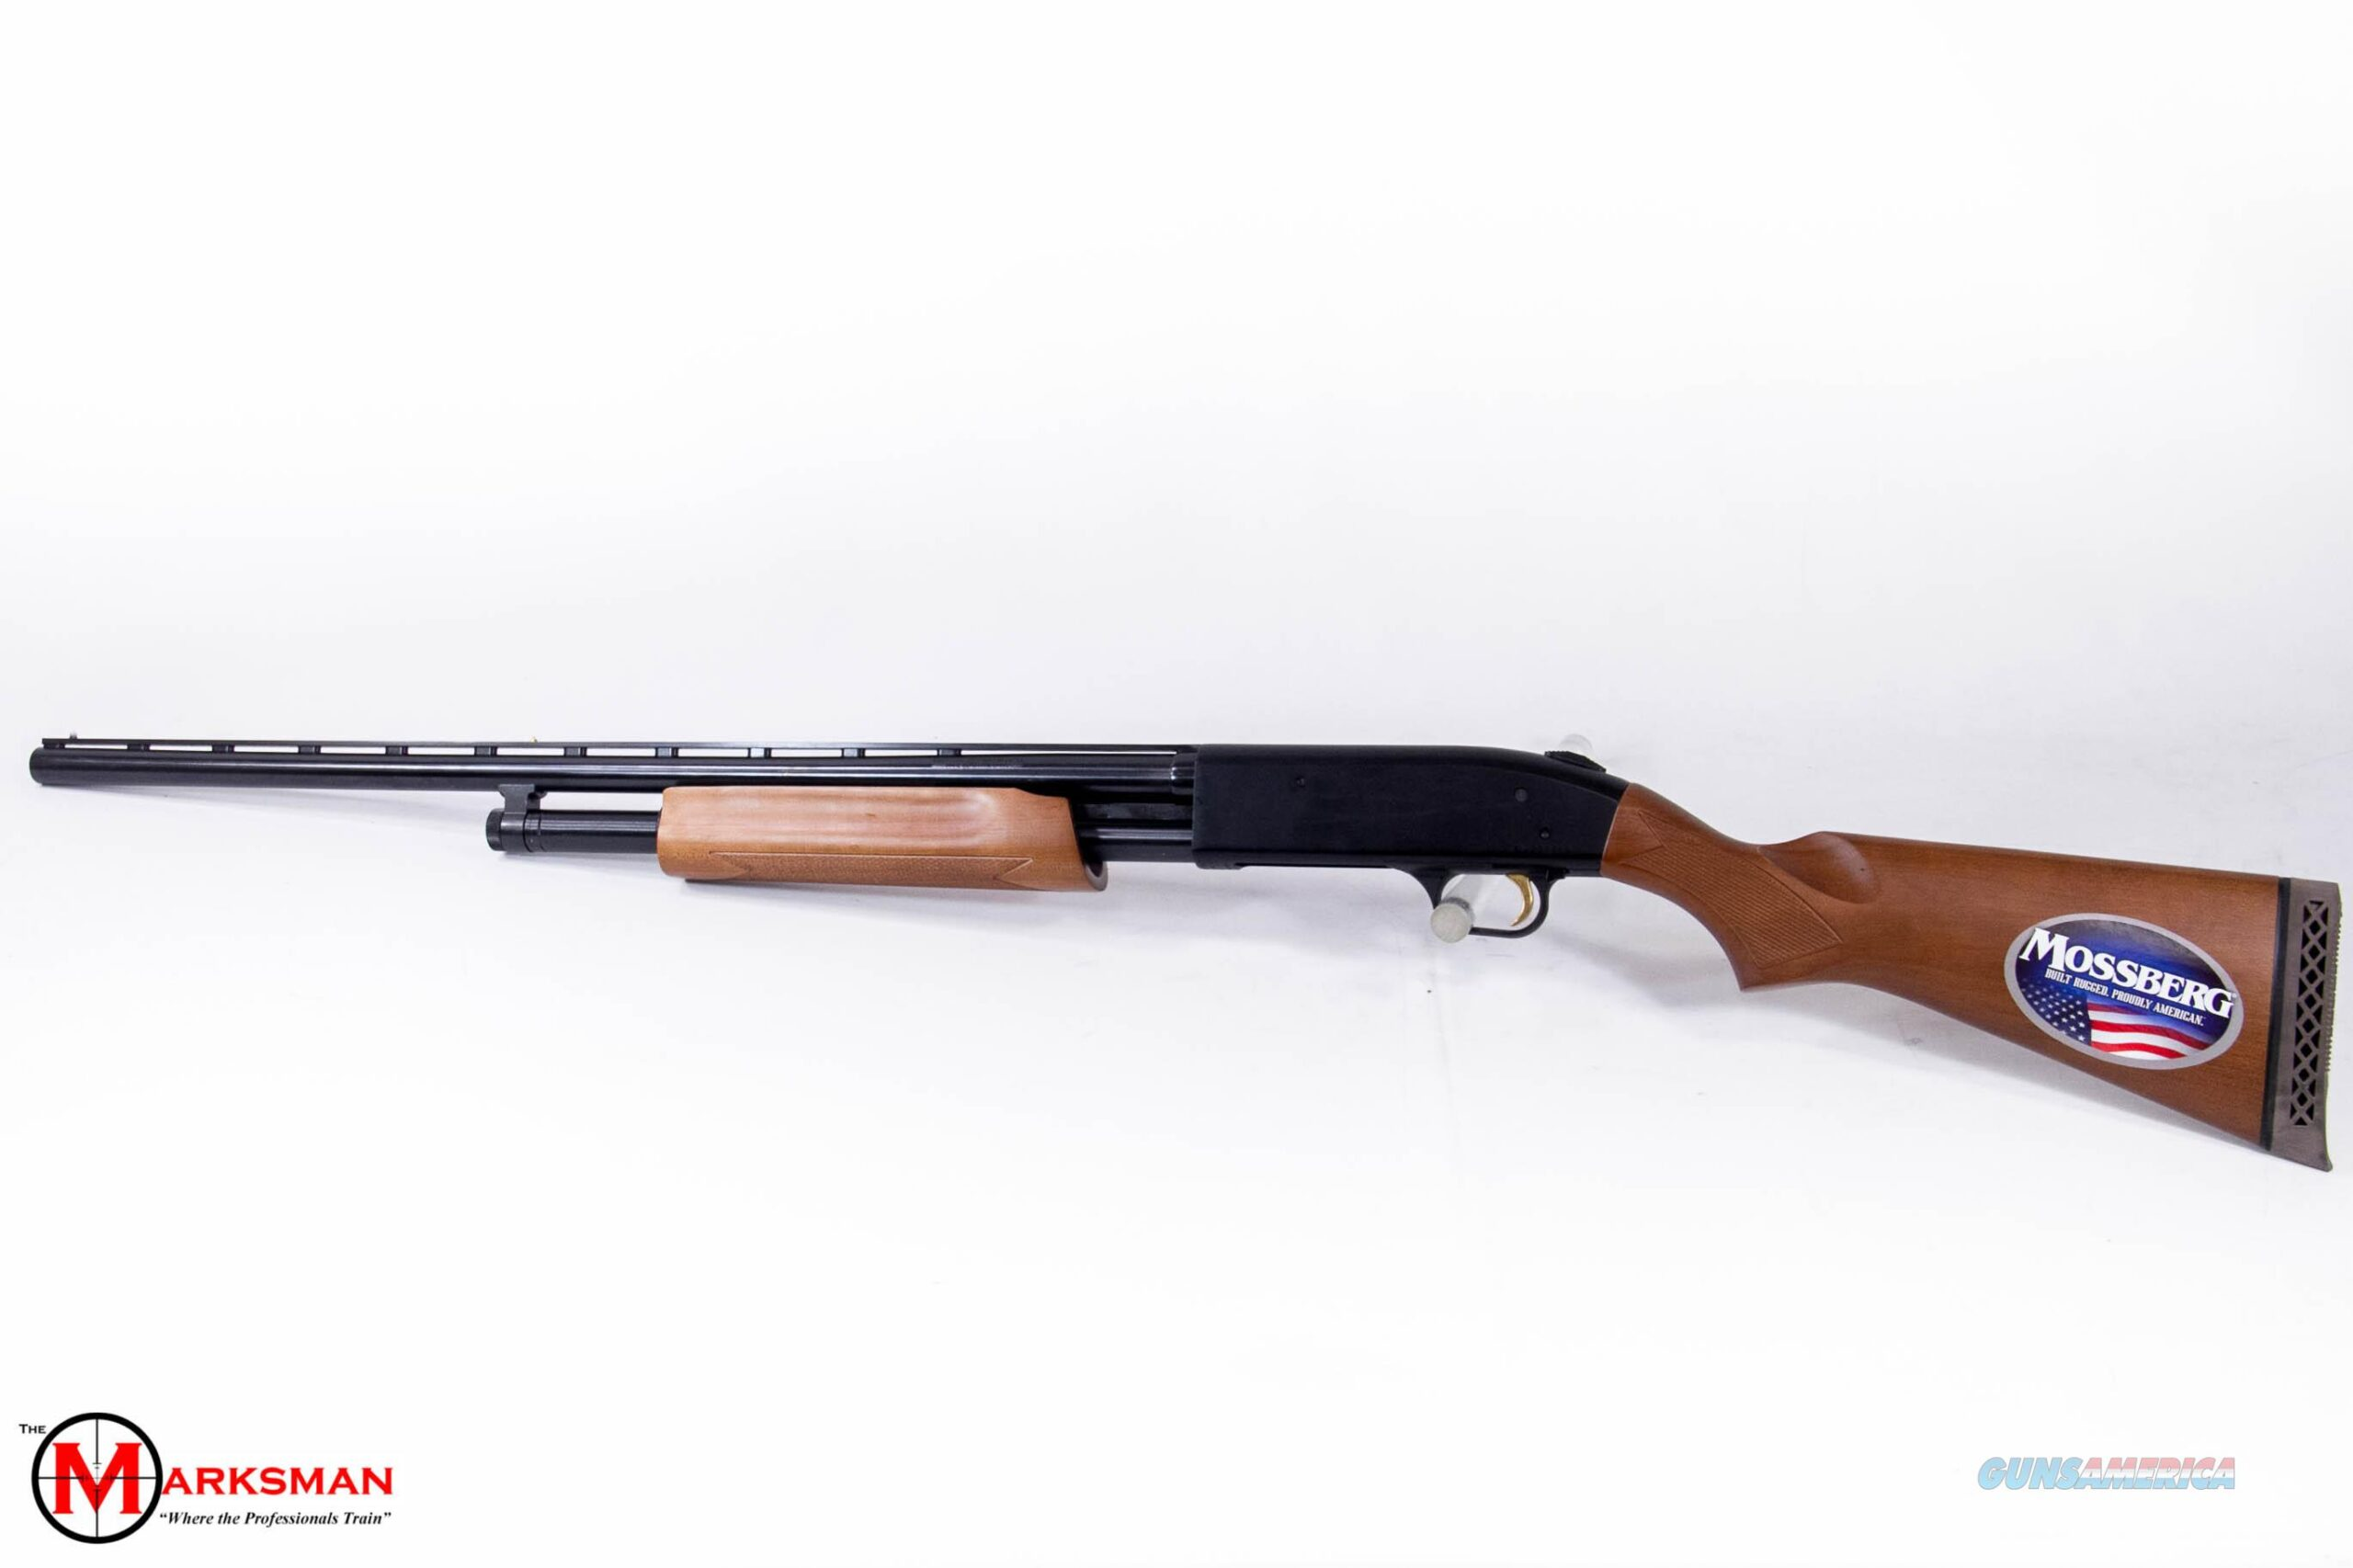 MOSSBERG 500 HUNTING ALL PURPOSE FIELD CLASSIC